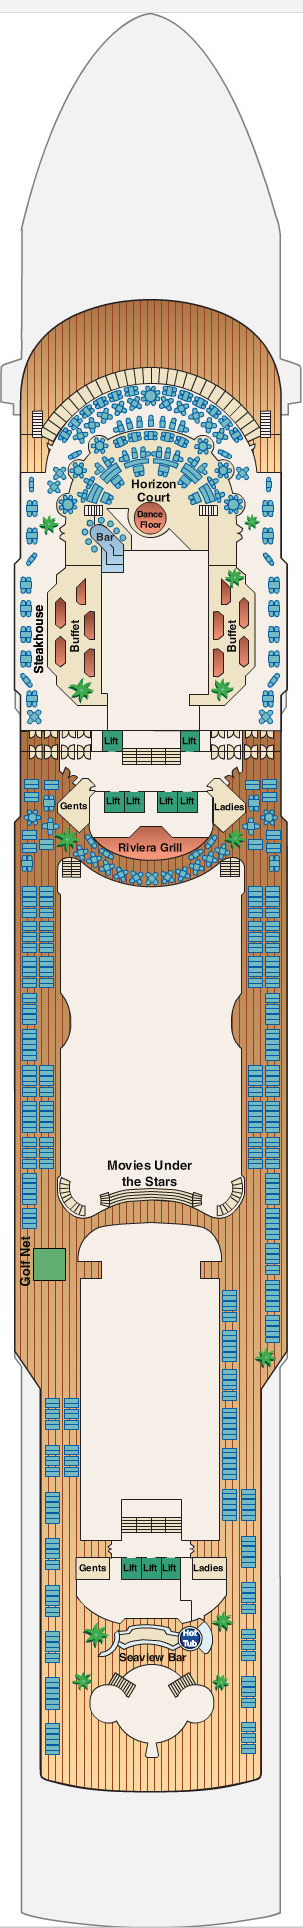 Sun Princess Lido Deck 14 layout